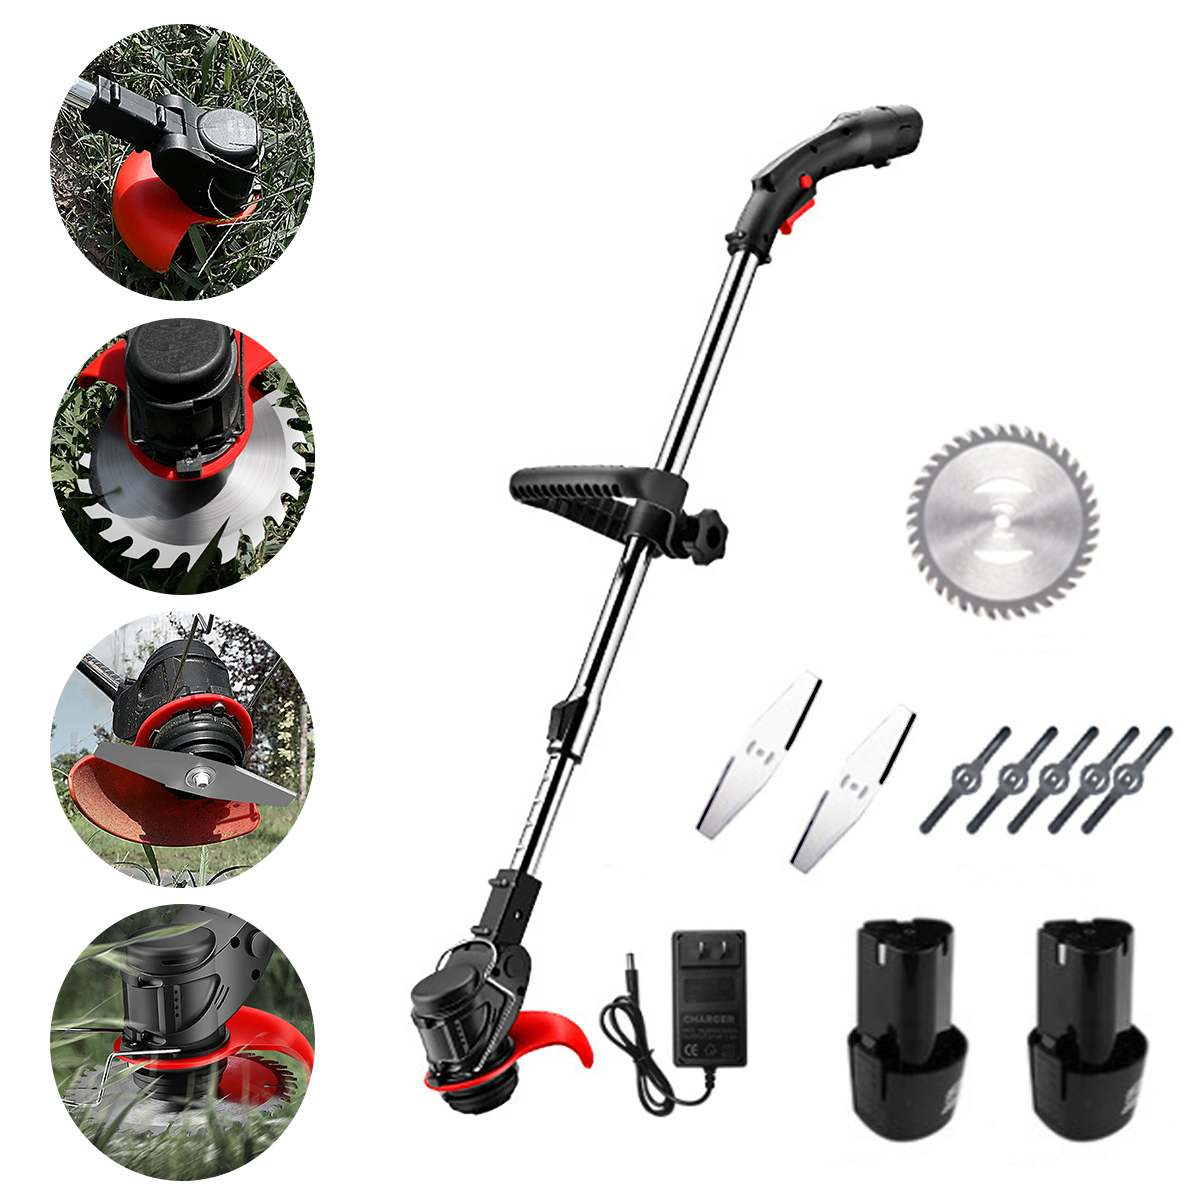 Portable Electric Grass Trimmer Handheld Lawn Mower Agricultural Household Cordless Weeder Garden Pruning Tool Brush Cutter